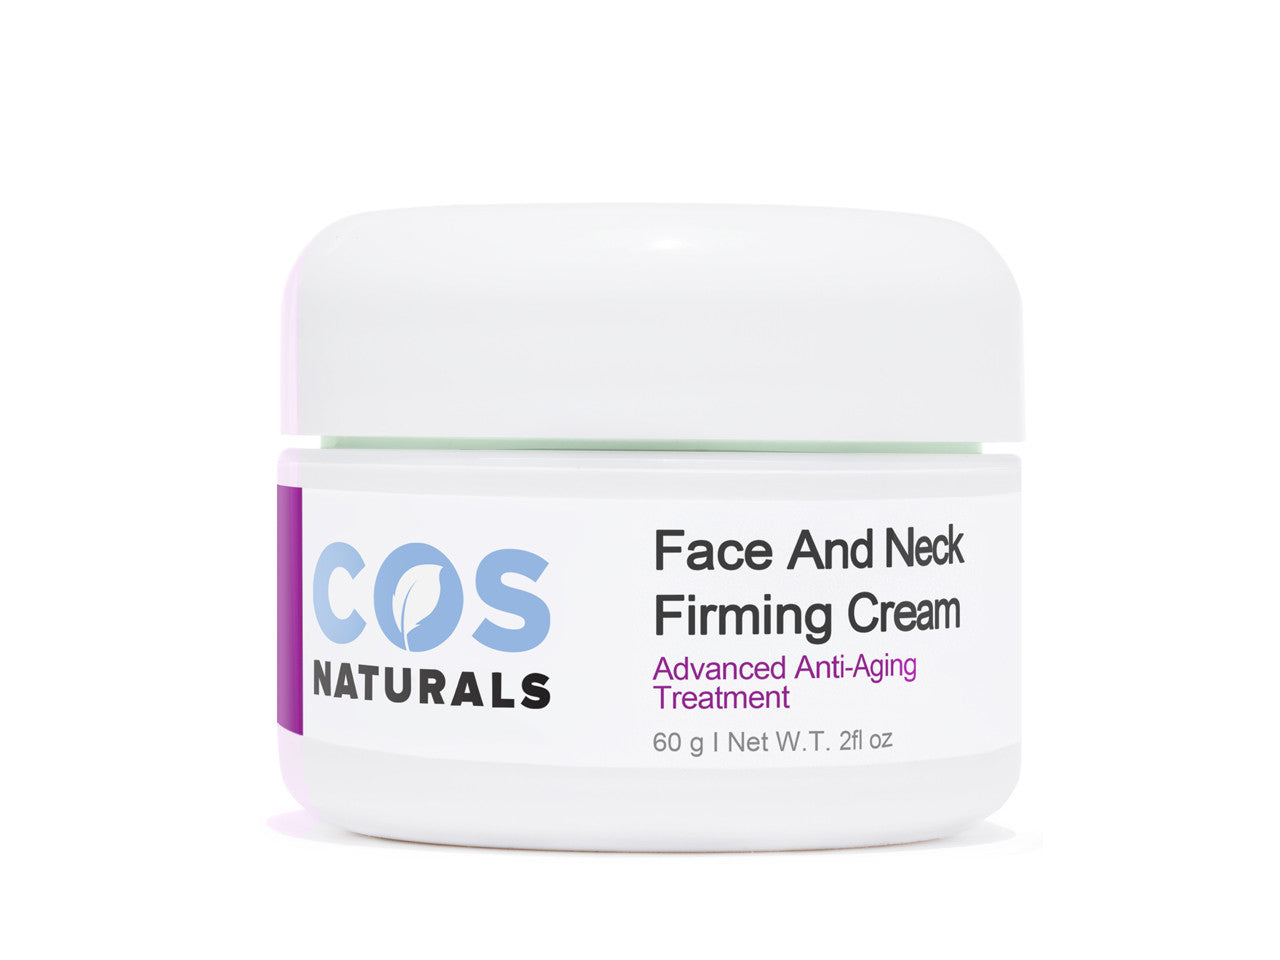 FACE AND NECK FIRMING CREAM Advanced Anti-Aging Treatment NATURAL & ORGANIC Ingredients For Wrinkles Fine Lines Saggy Skin Chest Body, 2 Oz